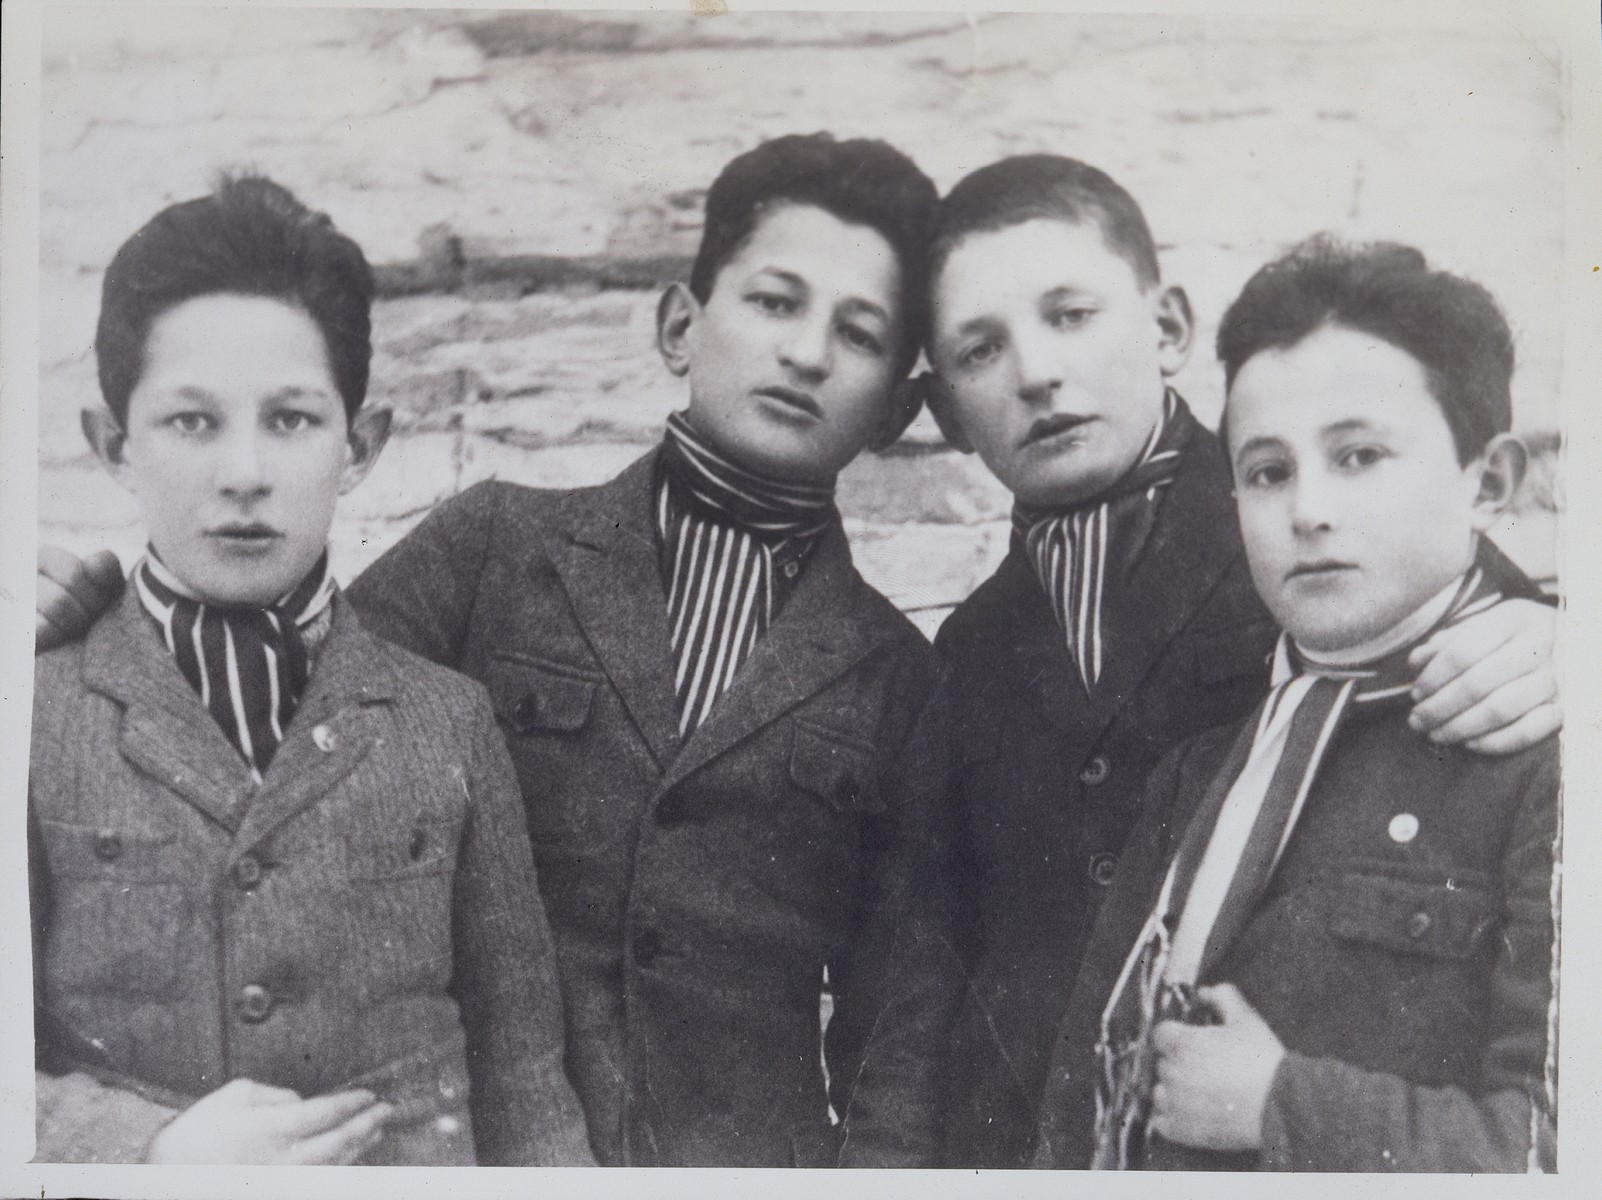 Four Jewish teenage boys from Eisiskes pose wearing striped cravats.  Pictured from right to left are: Velvke Saltz, Motke Kiuchefski, Leibke Sonenson and Israel Szczuczynski.  Velvke Saltzs immigrated to the United States; Motke Kiuchefski fled to the Soviet Union; Leibke Sonenson was killed by the Germans in the September 1941 mass shooting action in Eisiskes; and Israel Szczuczynski was killed by members of the Polish Home Army.